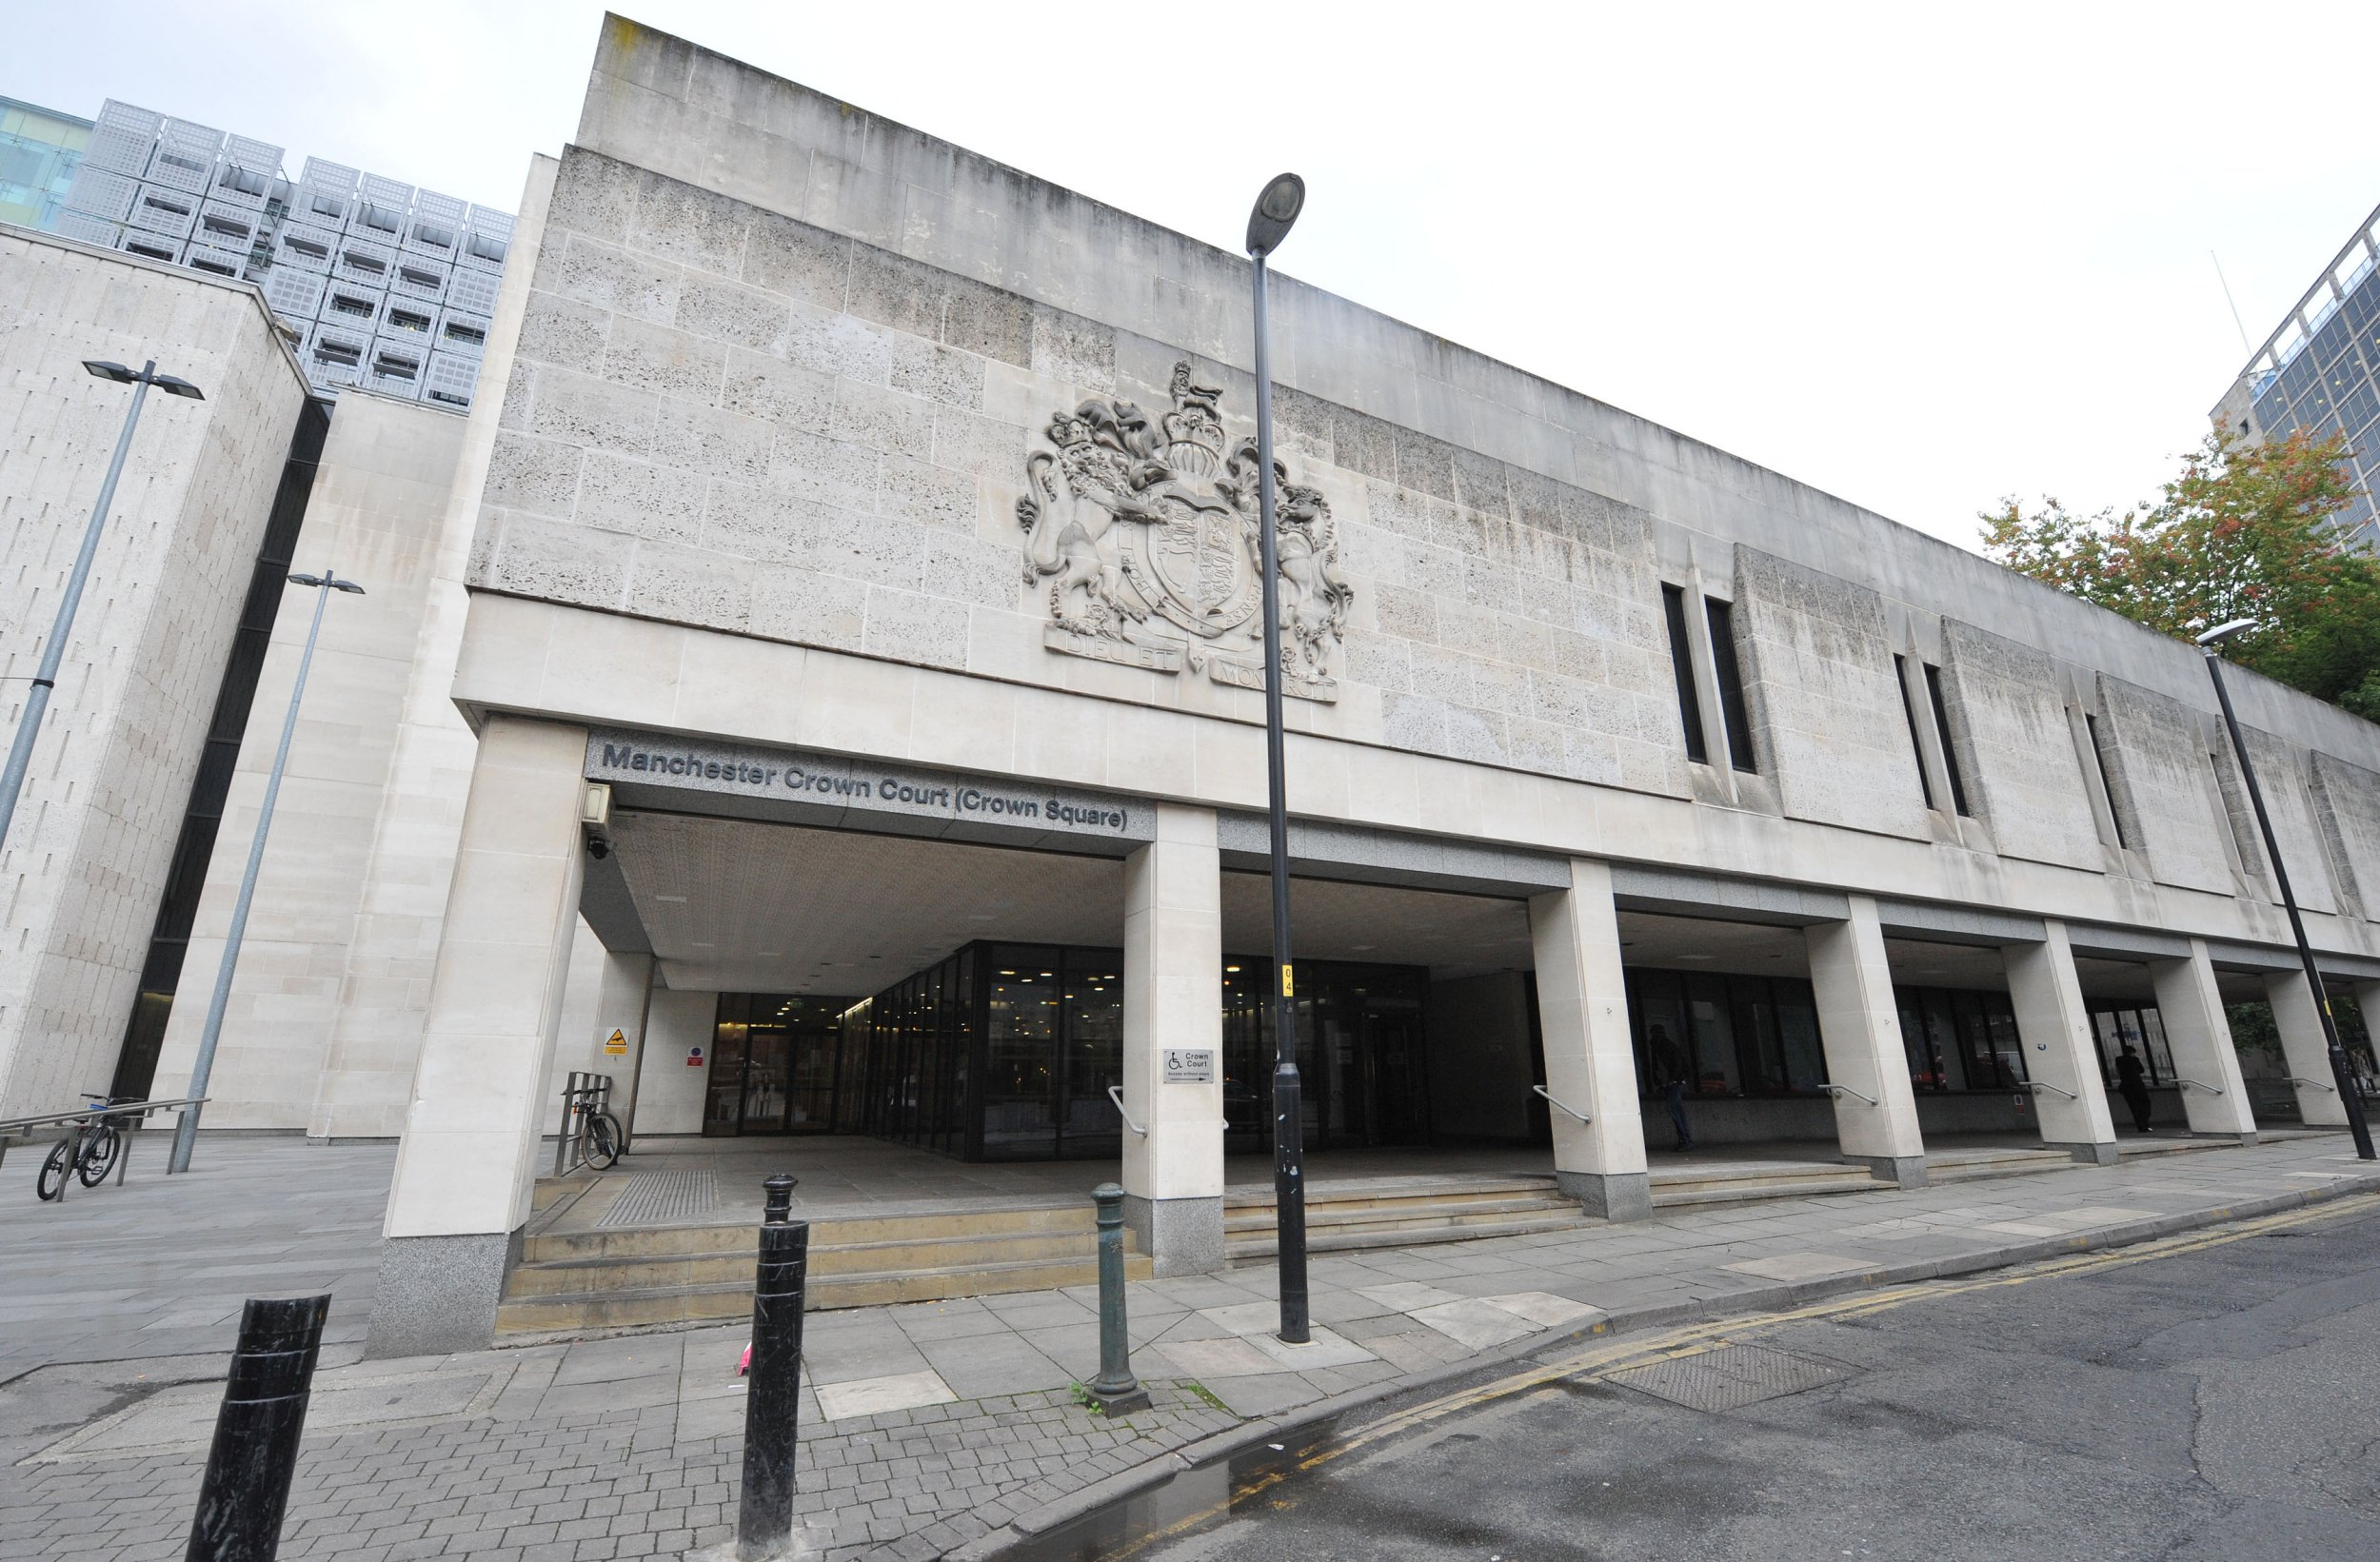 Autistic woman who was 'obsessed with men' had wellbeing compromised, judge says